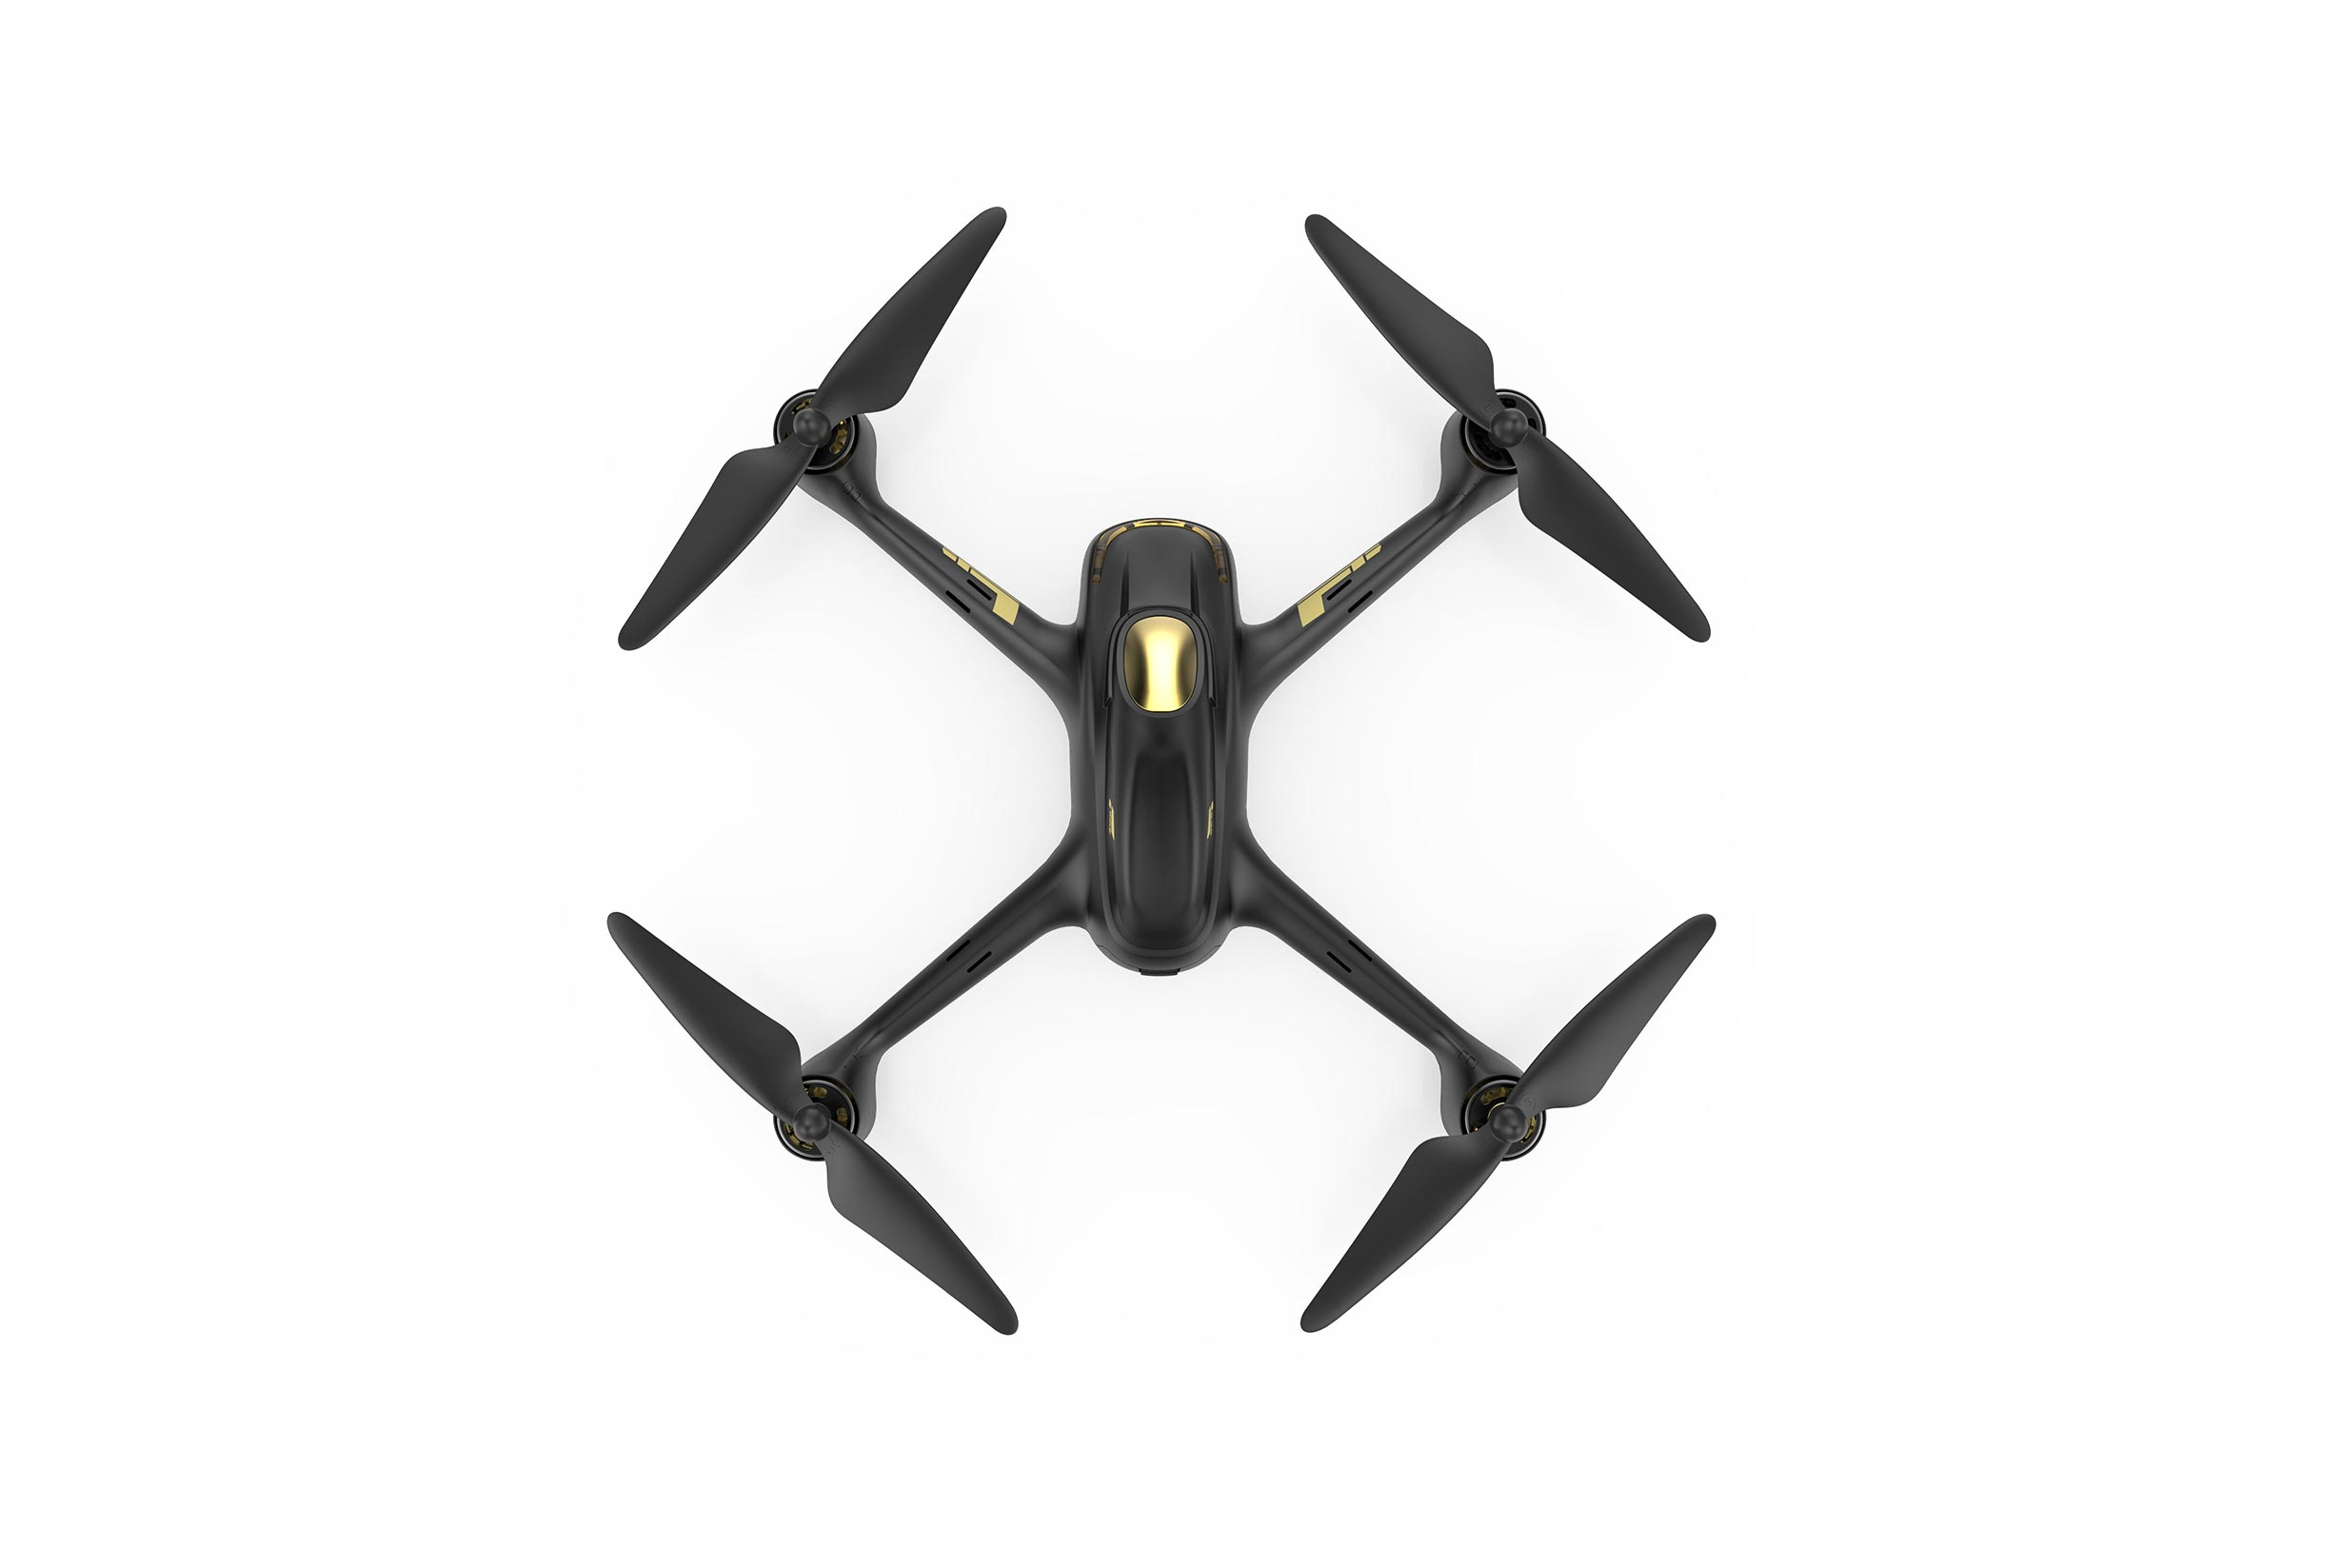 hubsan h501s x4 air 4 channel gps 5 8g fpv brushless with